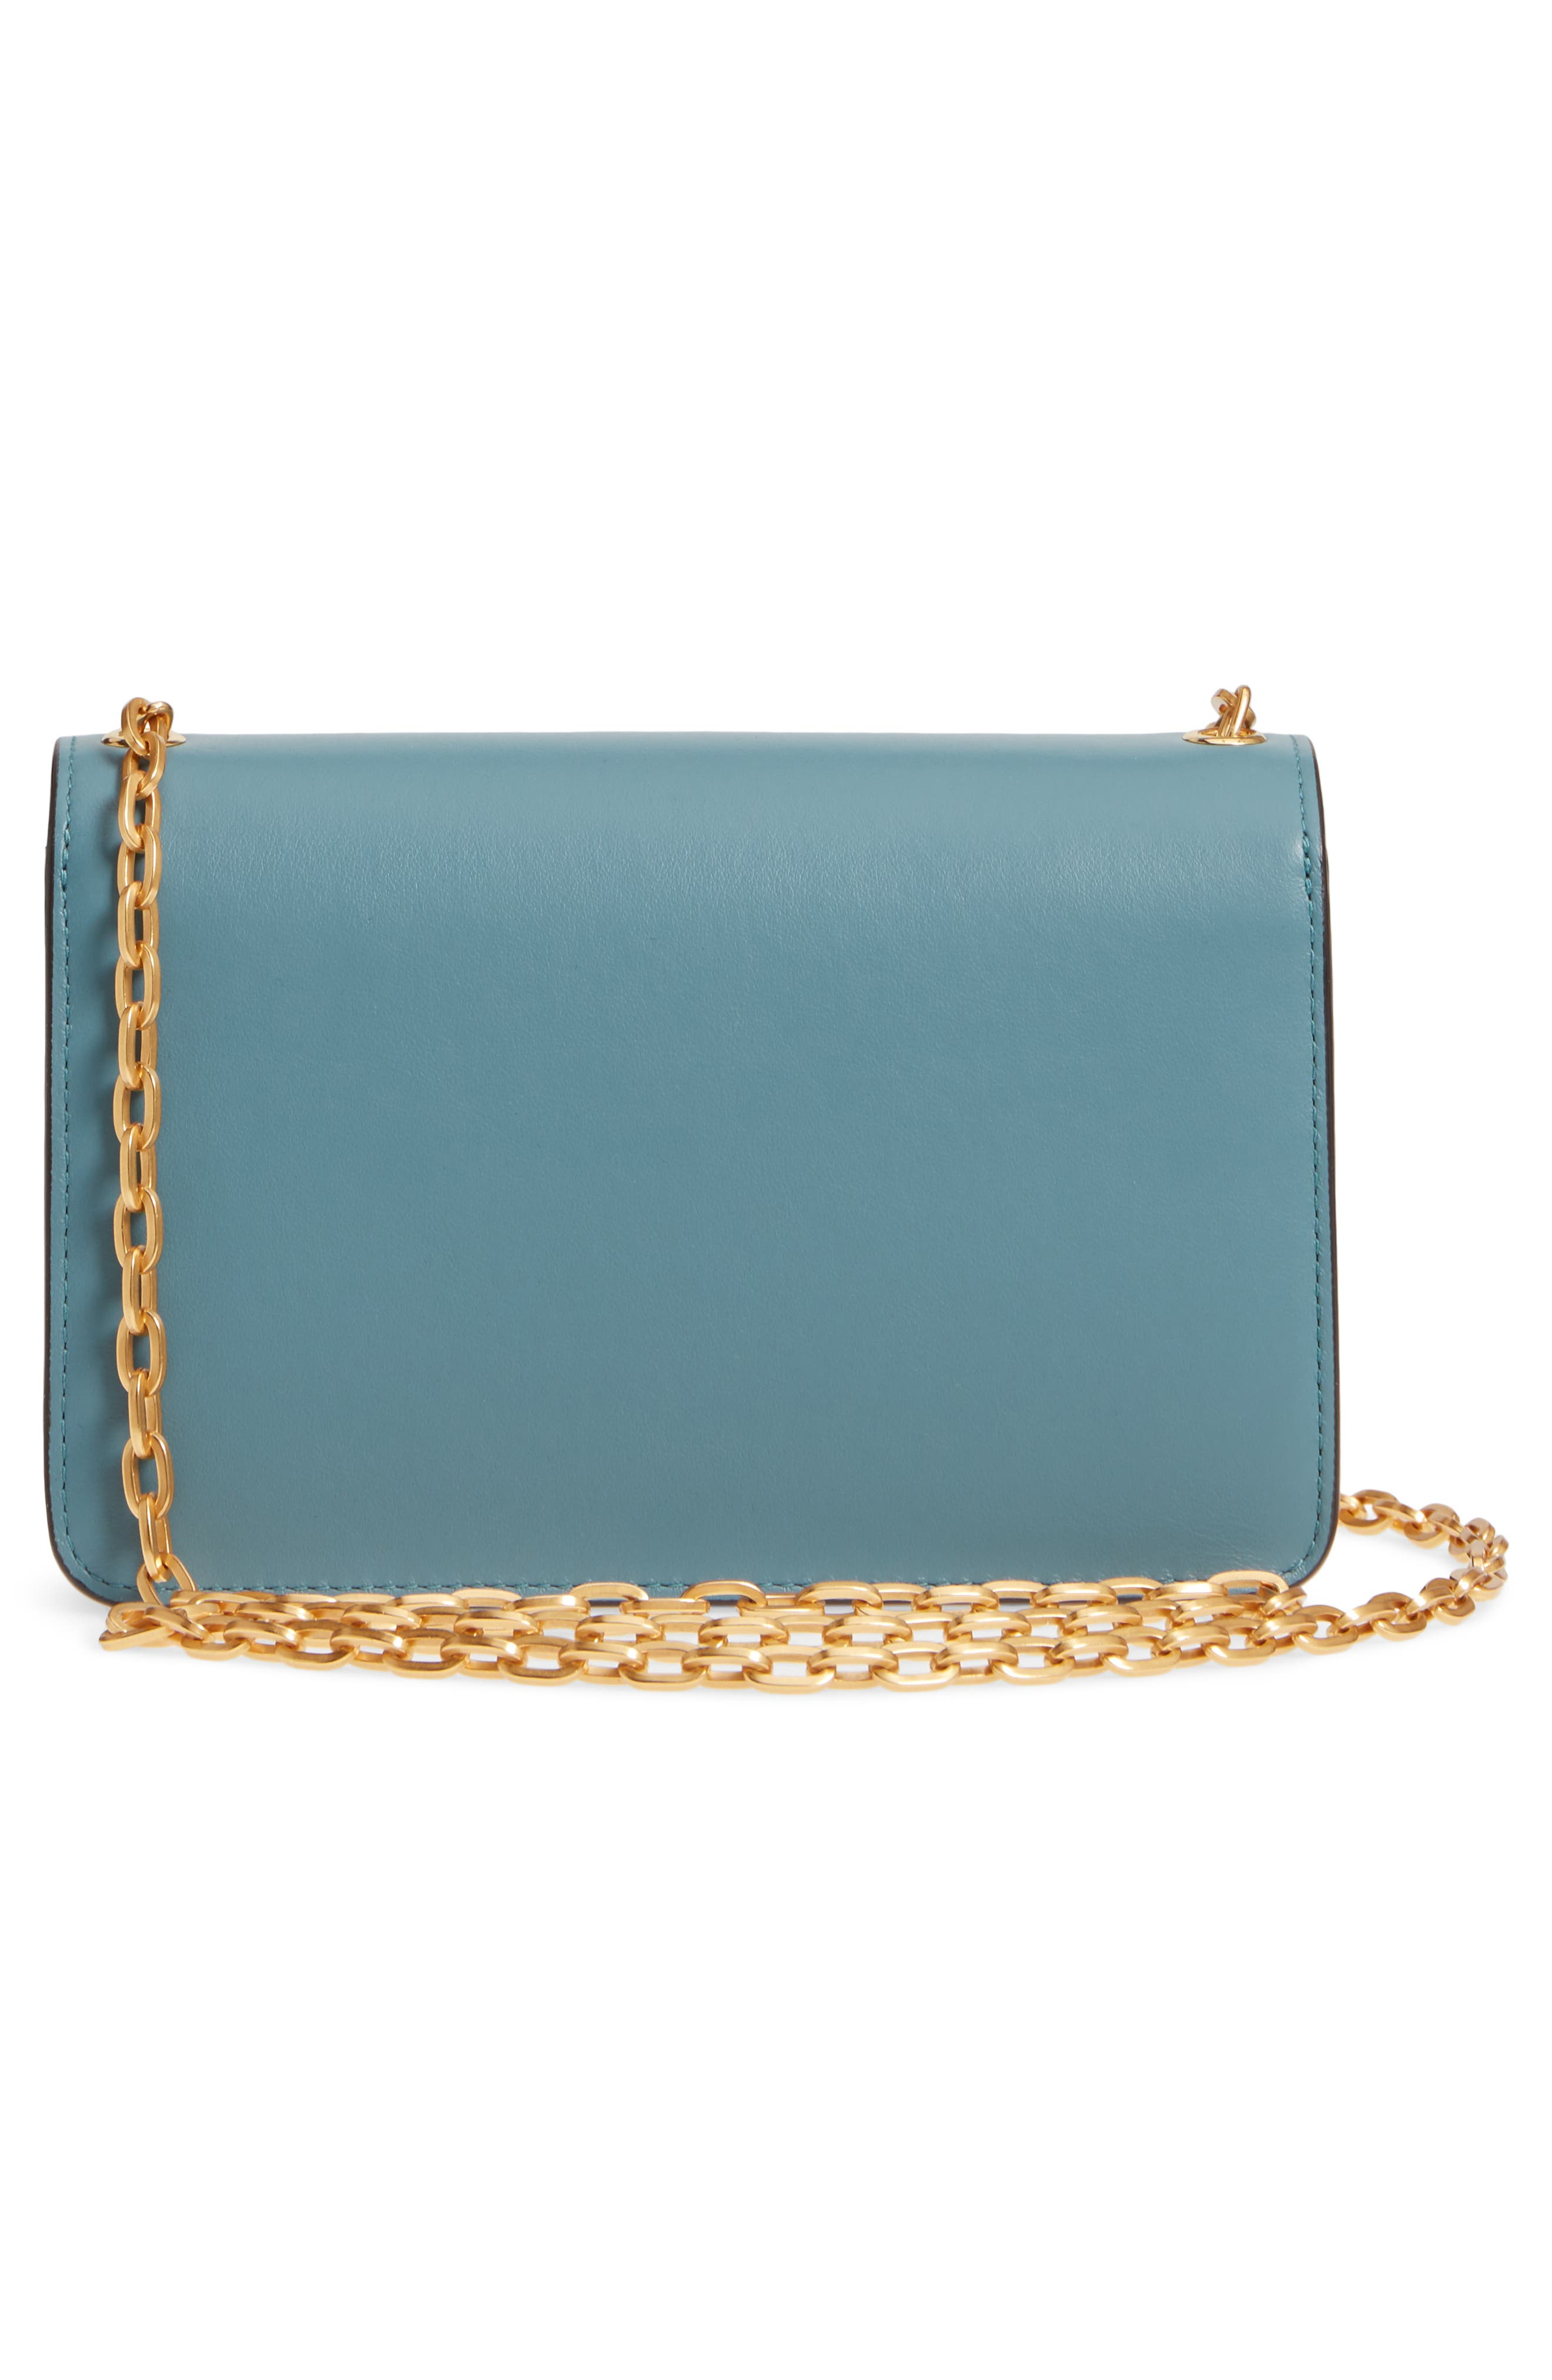 Multiflap Calfskin Leather Clutch,                             Alternate thumbnail 3, color,                             401